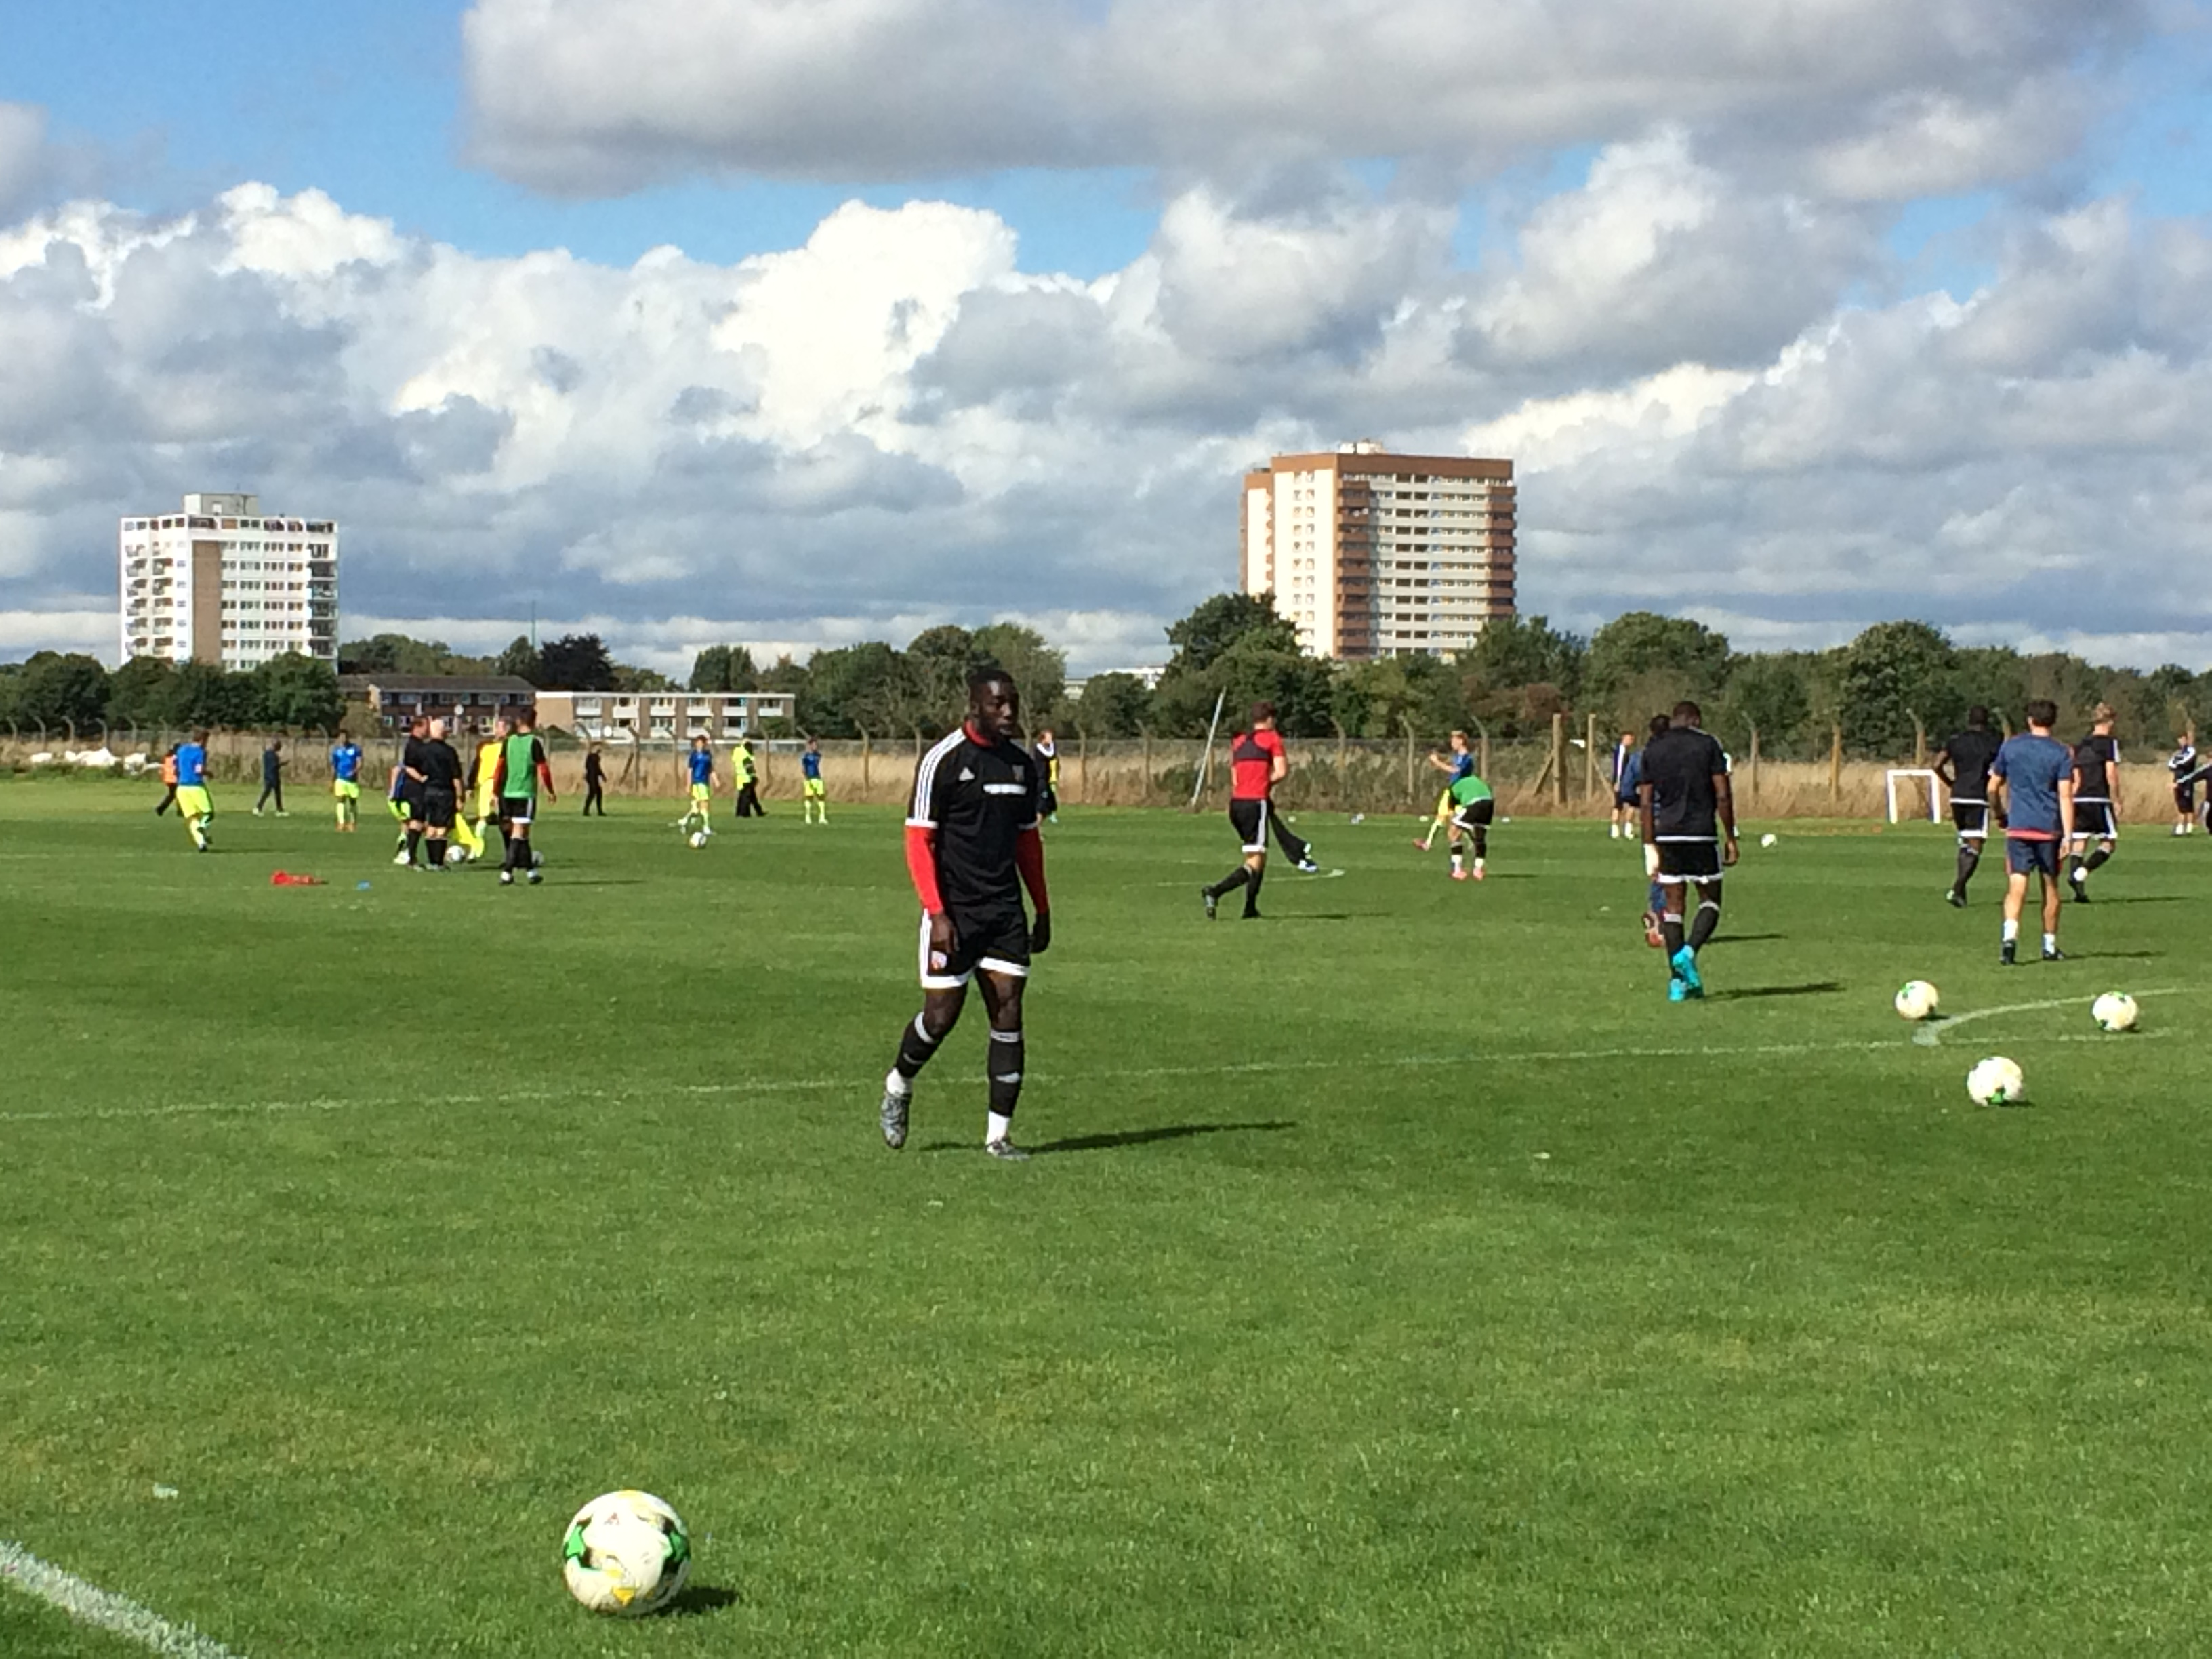 Watching youth team football at Brentford training ground